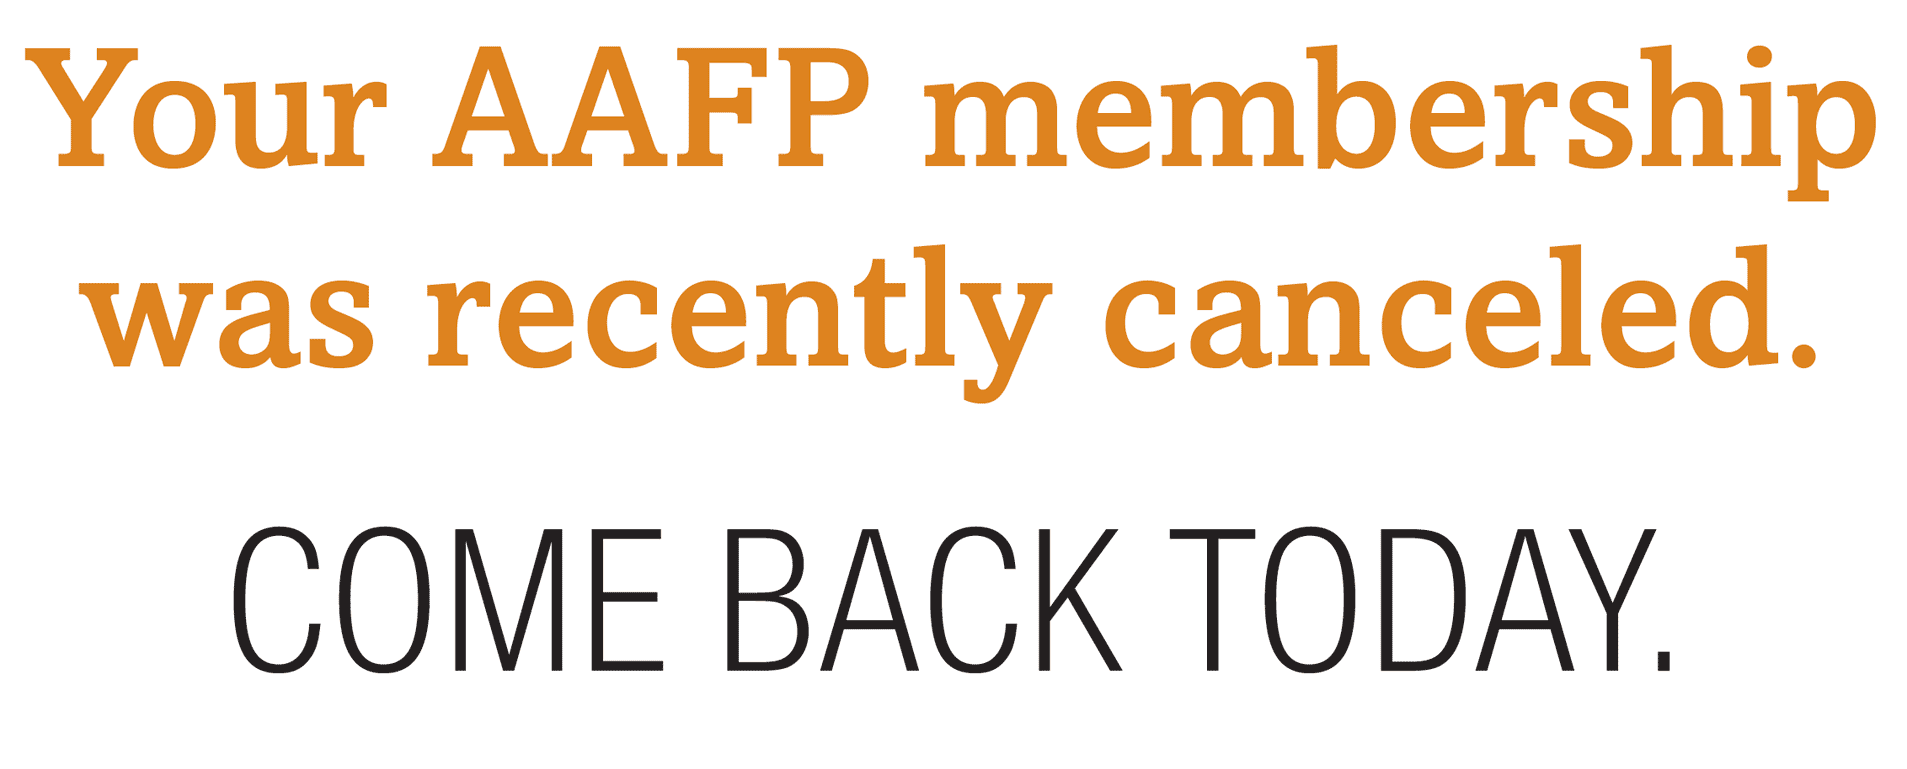 Your AAFP membership was recently canceled. COME BACK TODAY.